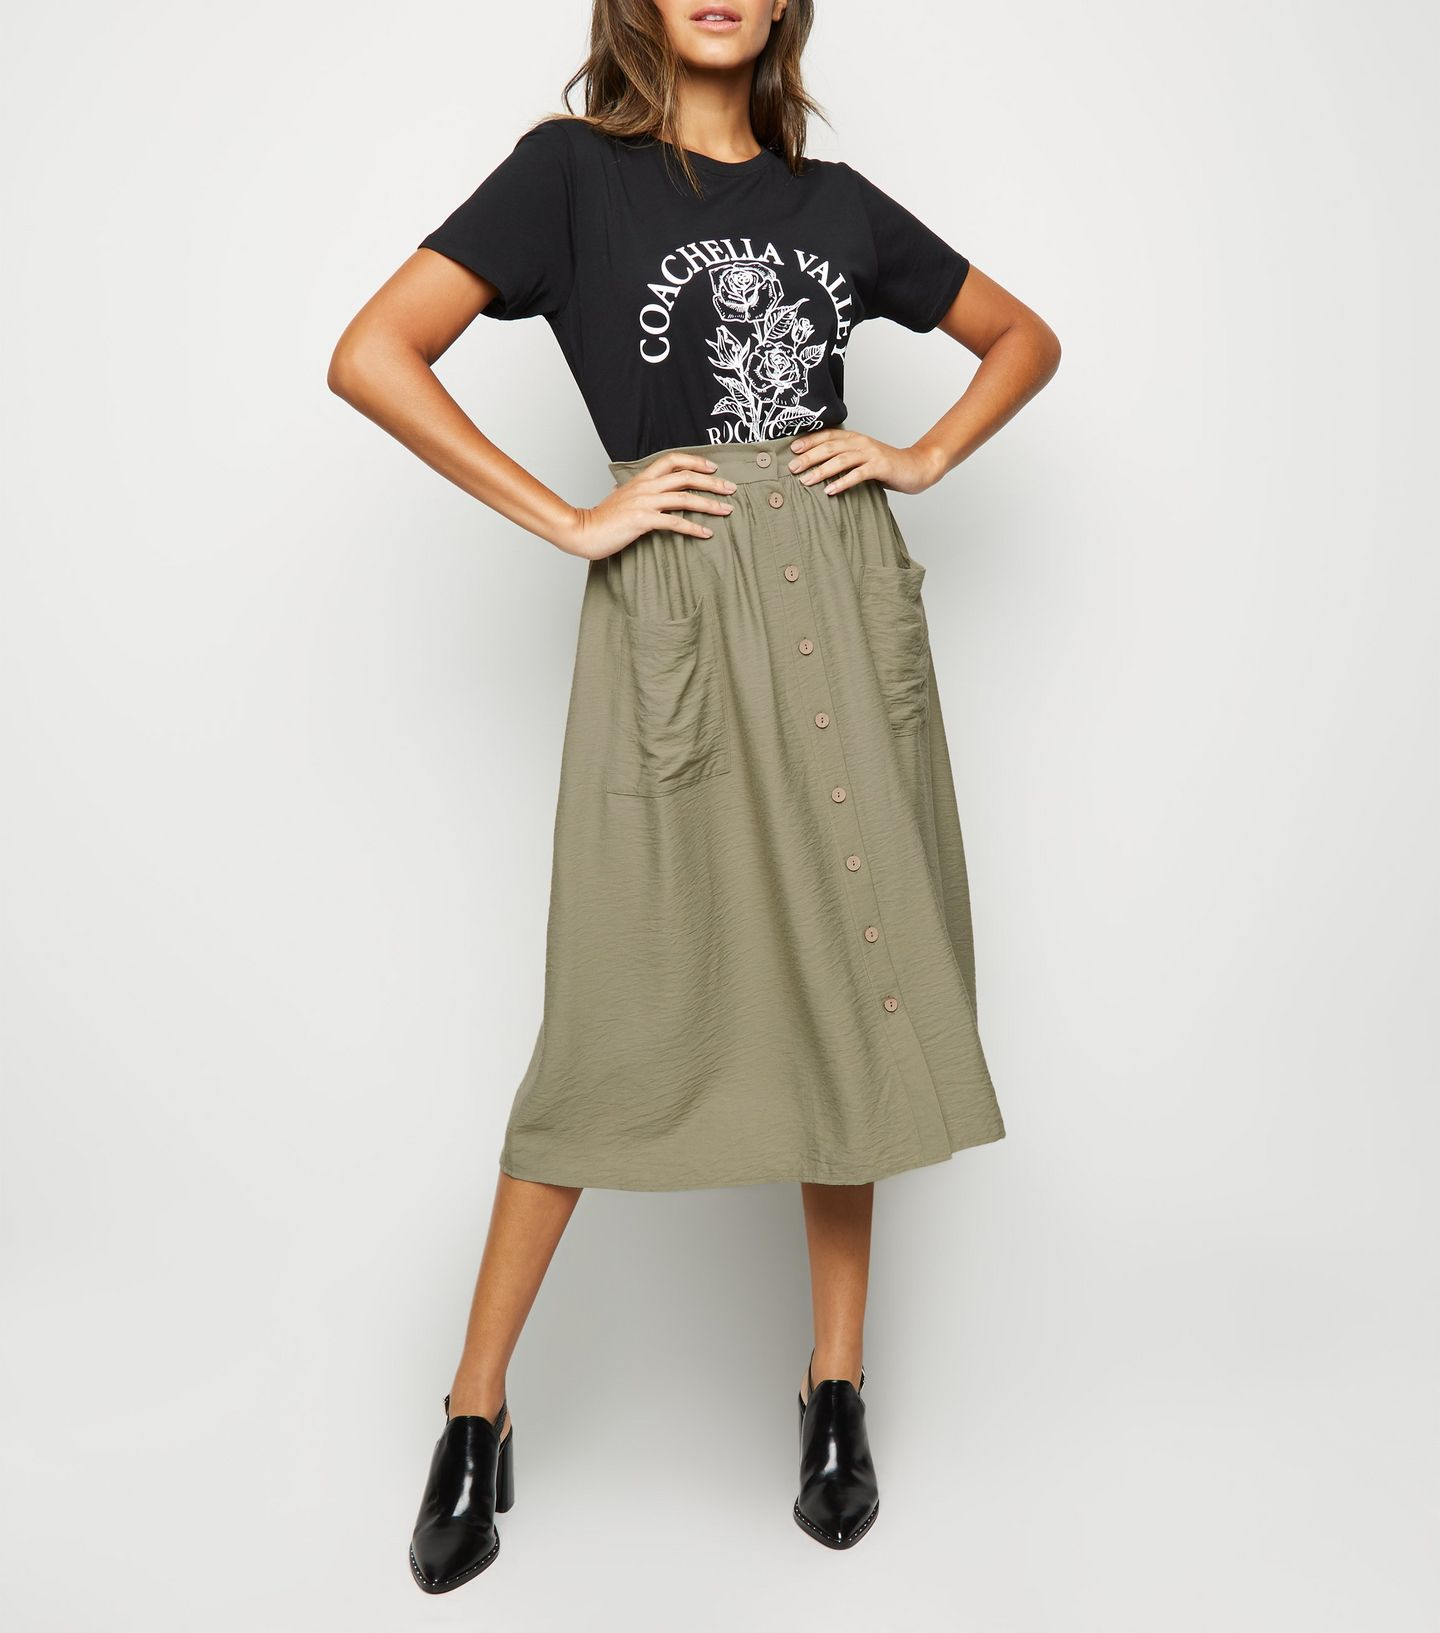 5c55634a9f This €23 New Look midi skirt is the weekend bargain you deserve | Her.ie